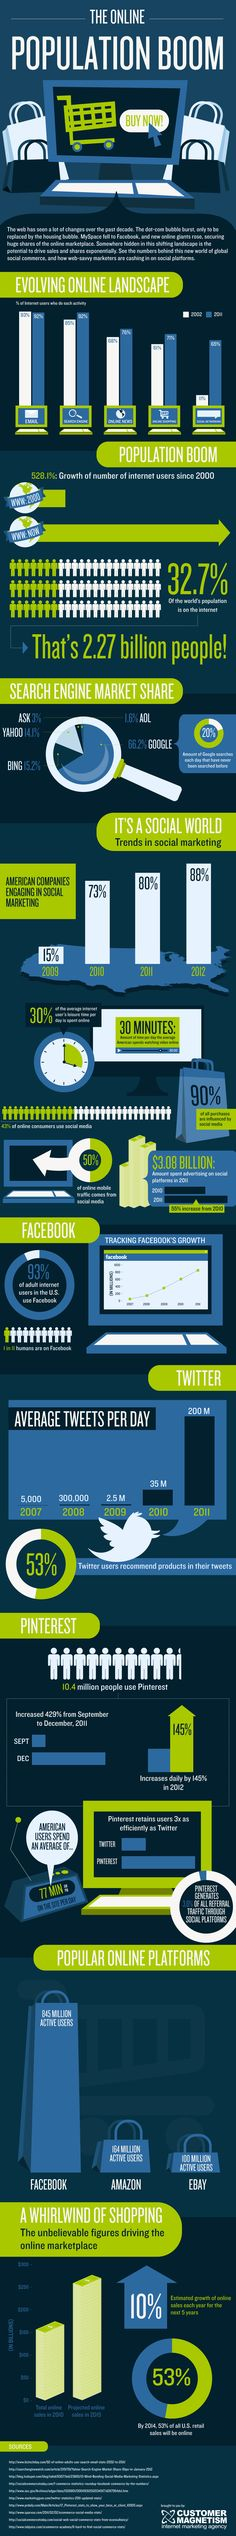 Consumers' Online Behaviour Infographic